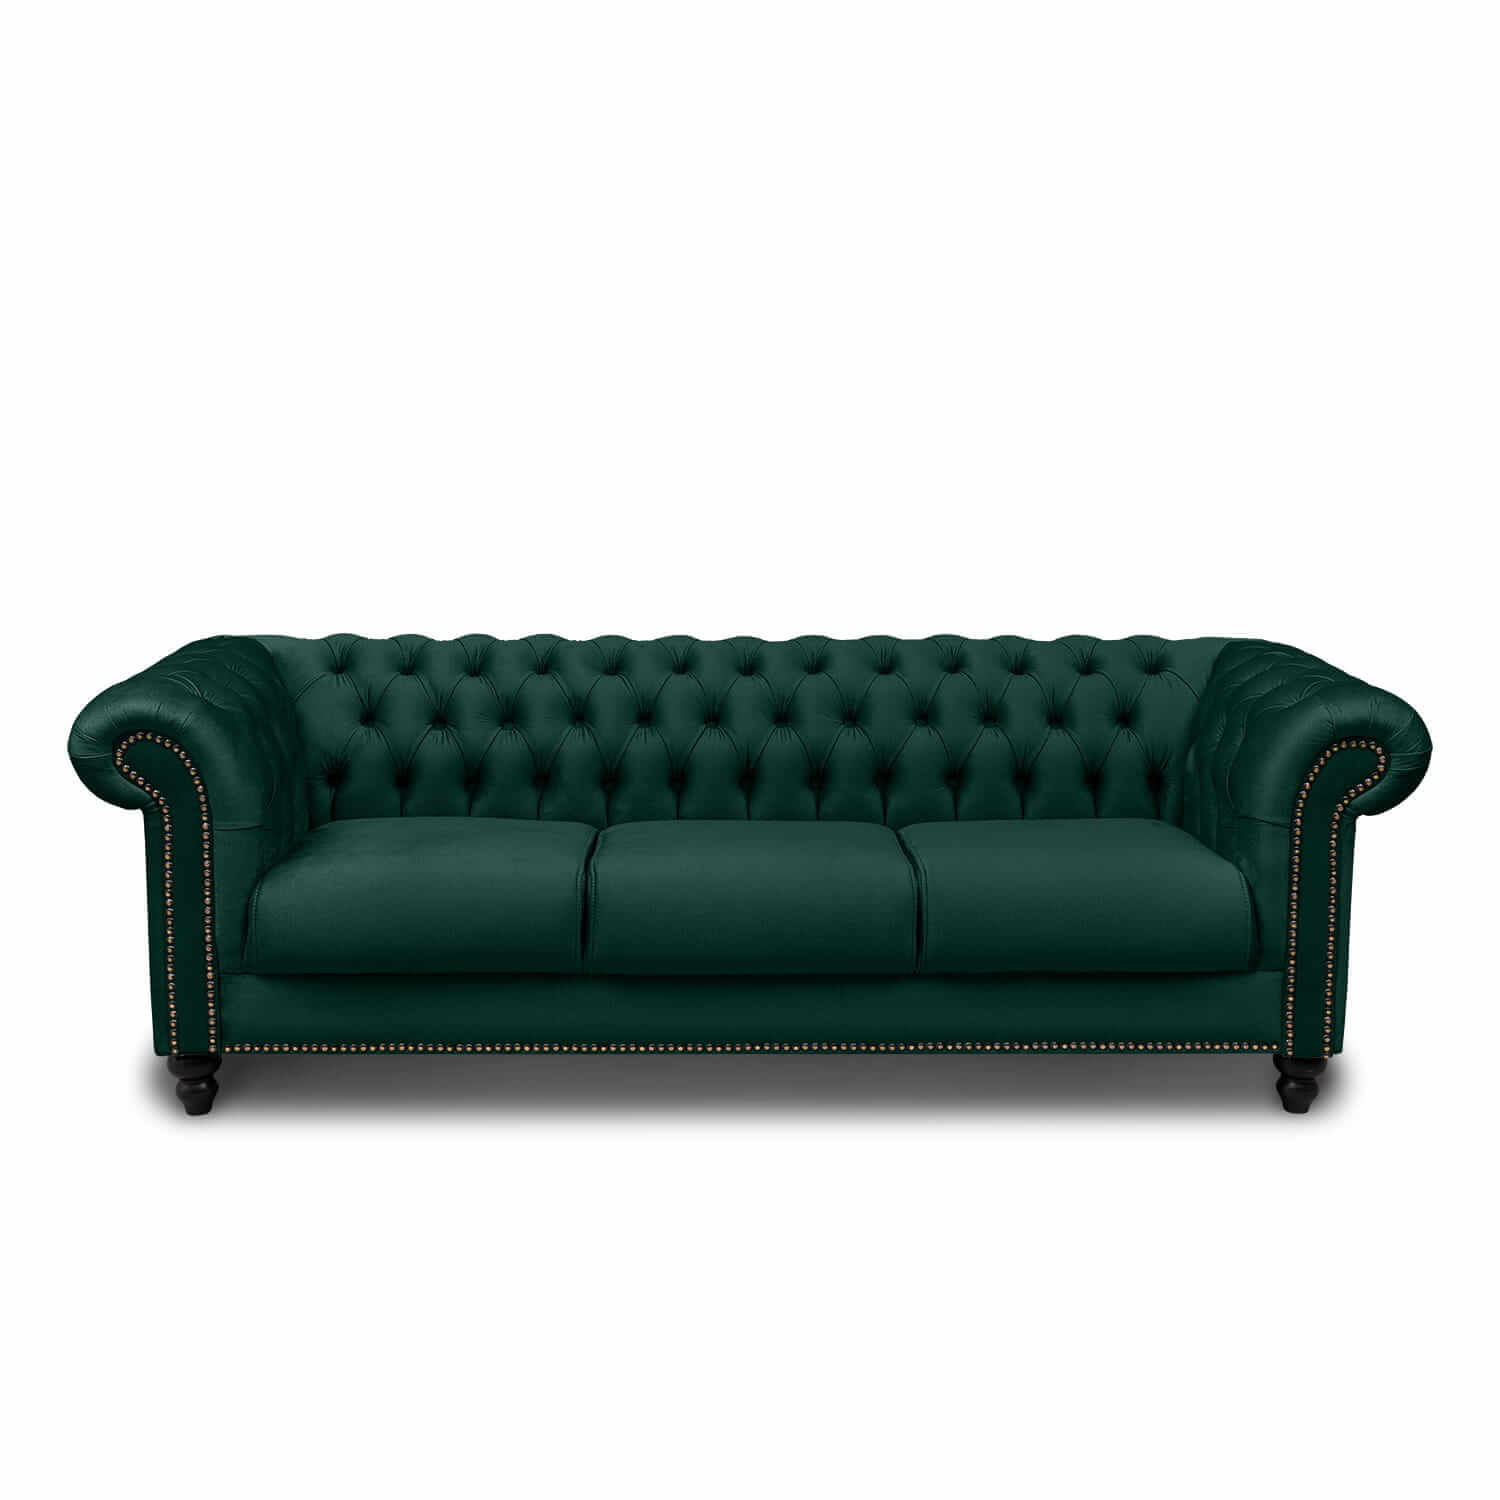 https://www.excluzive.se/wp-content/uploads/2020/10/Chesterfield-3-sits-Gron.jpg